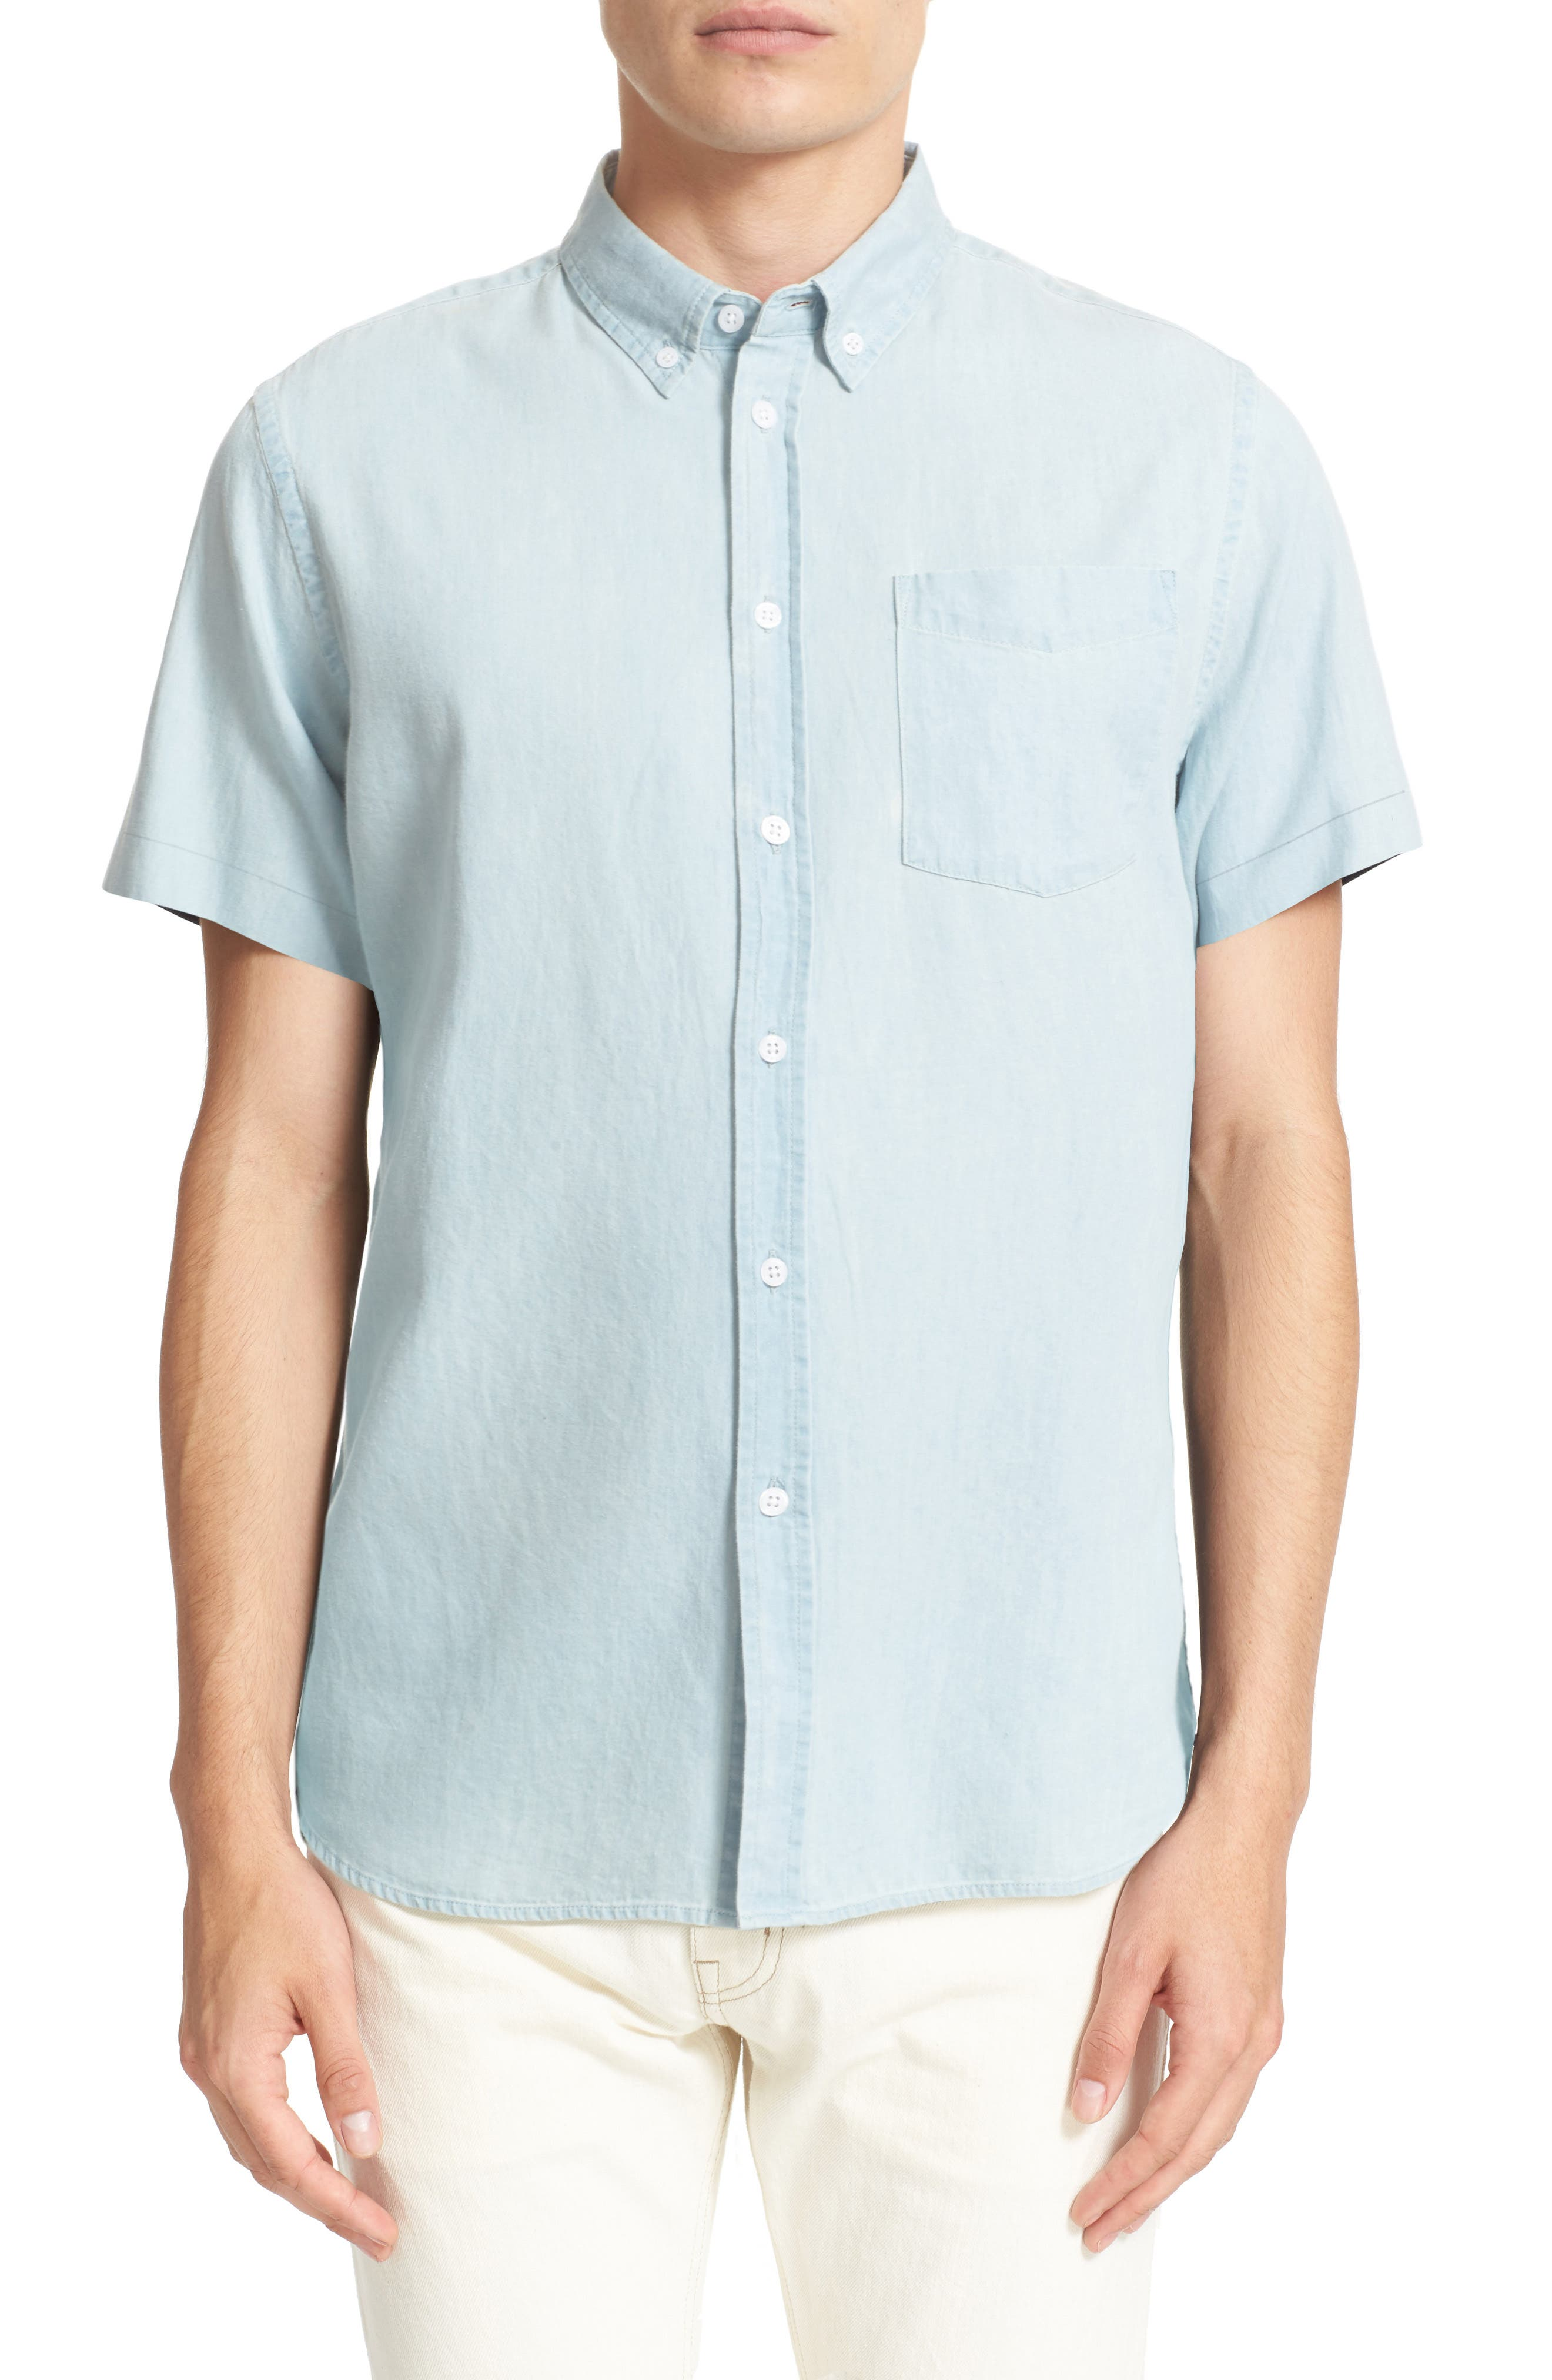 Esquina Slim Fit Denim Sport Shirt,                         Main,                         color, WASHED INDIGO